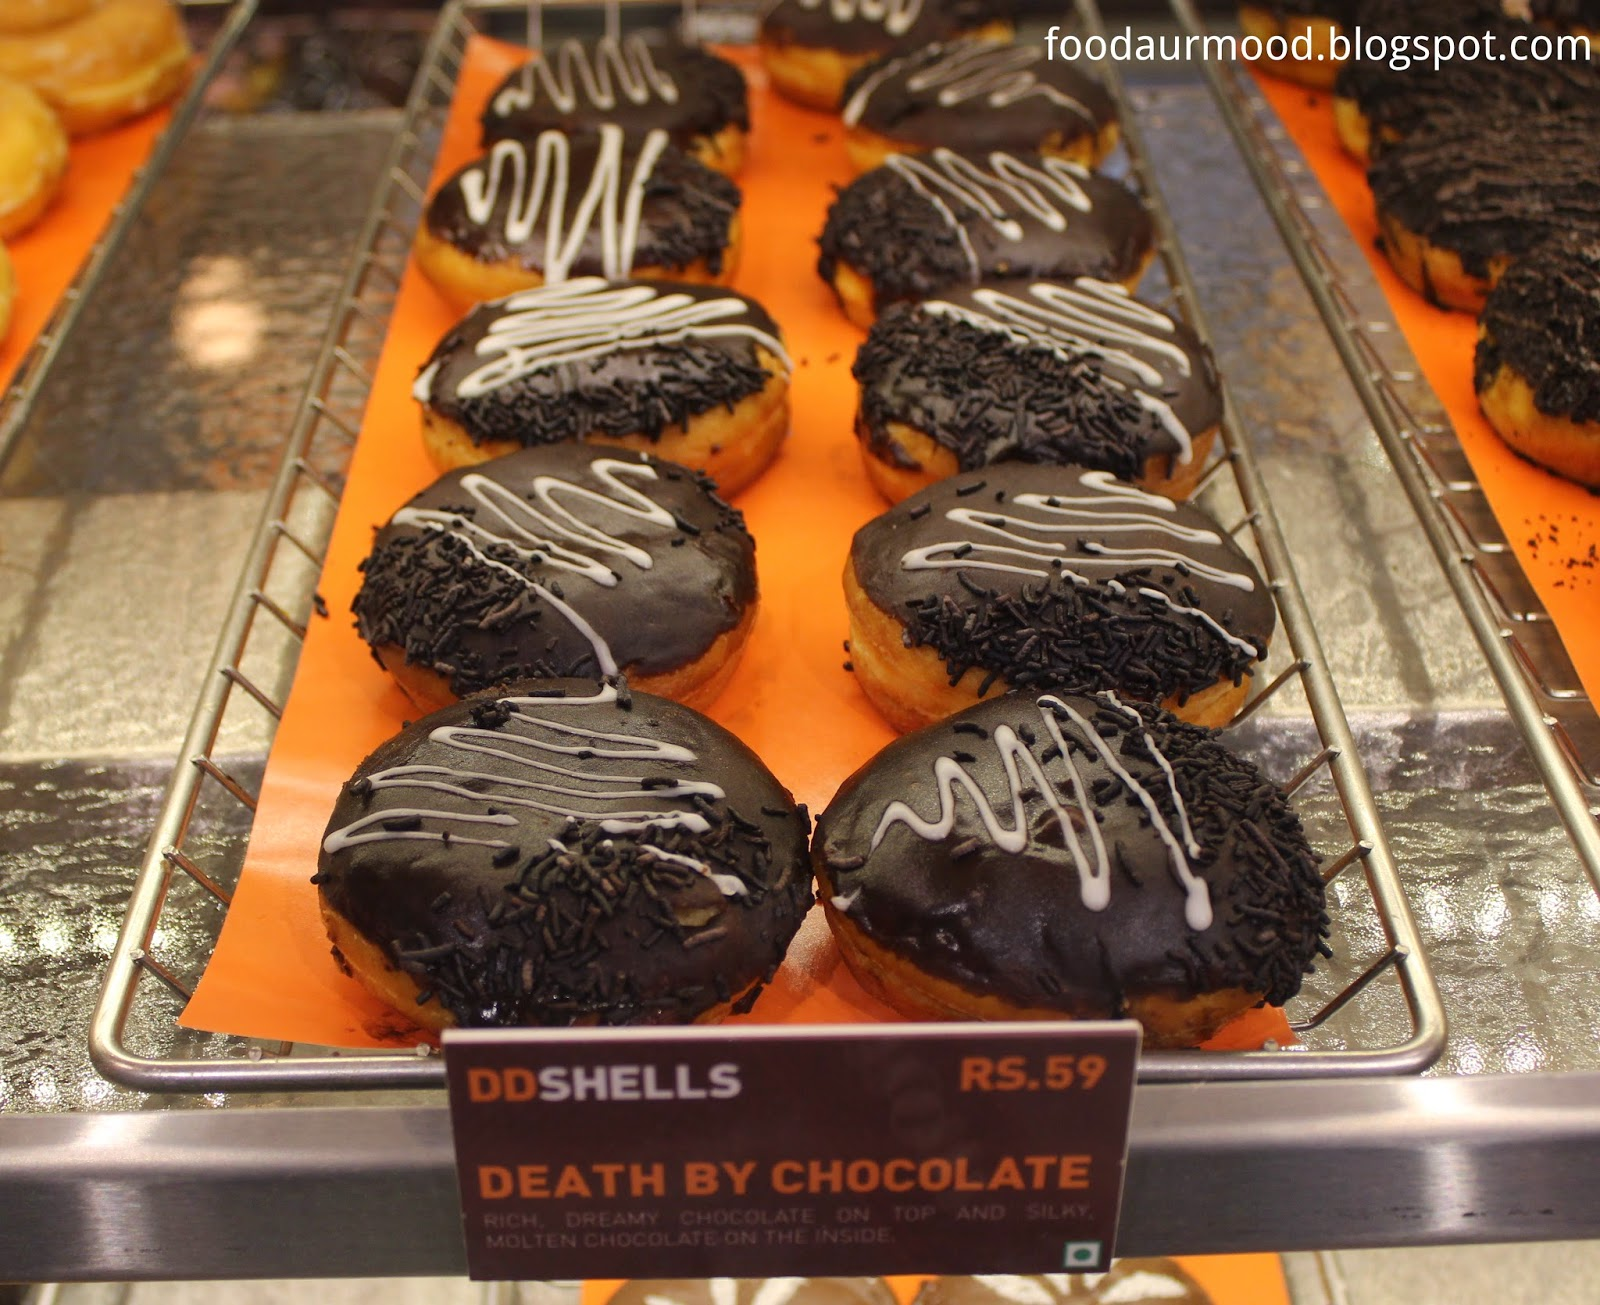 Dunkin Donuts India, Donuts, Death by Chocolate